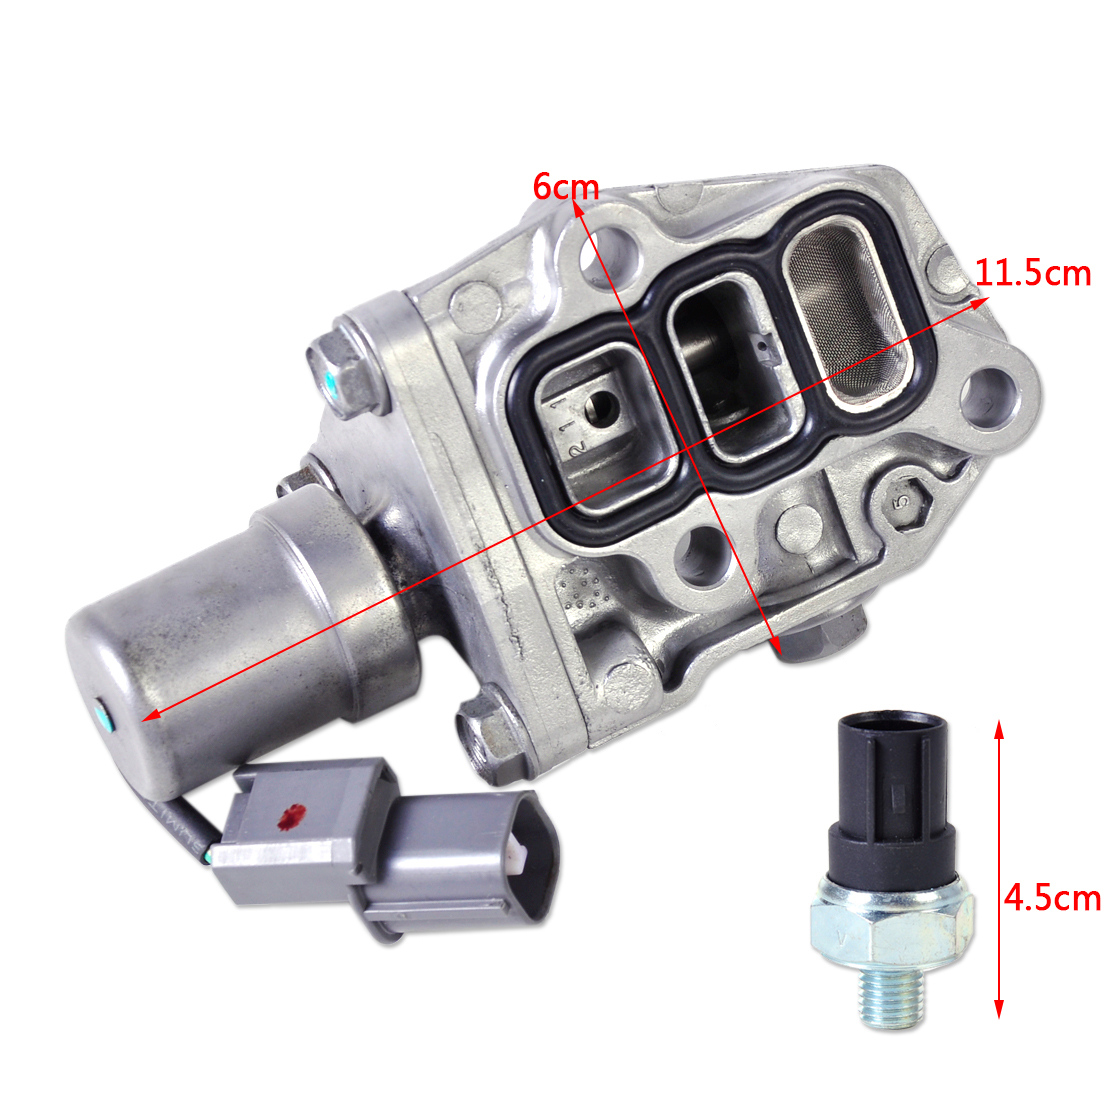 new vtec solenoid spool valve 15810 paa a02 fits for 4cyl honda accord odyssey. Black Bedroom Furniture Sets. Home Design Ideas